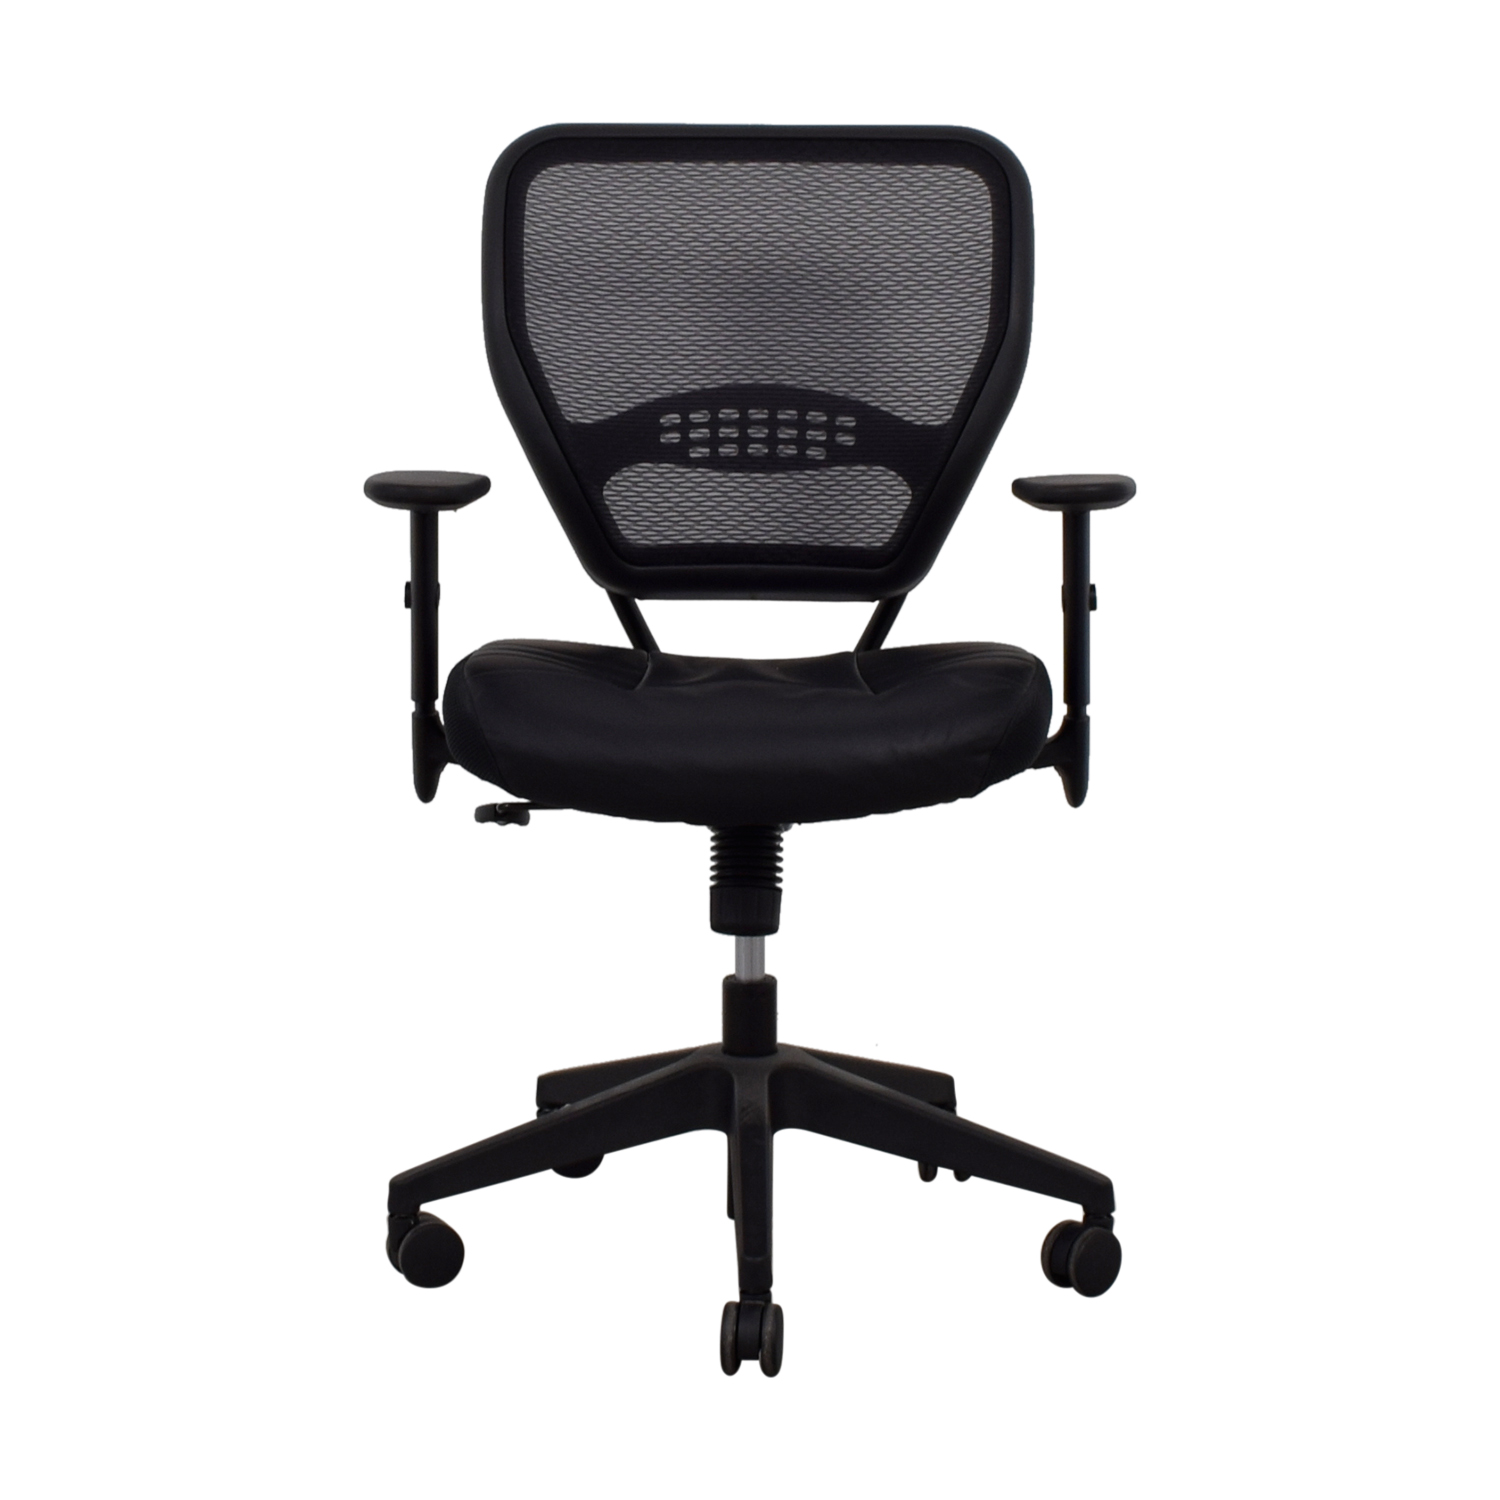 Office Star Office Star AirGrid Black Office Chair Chairs ...